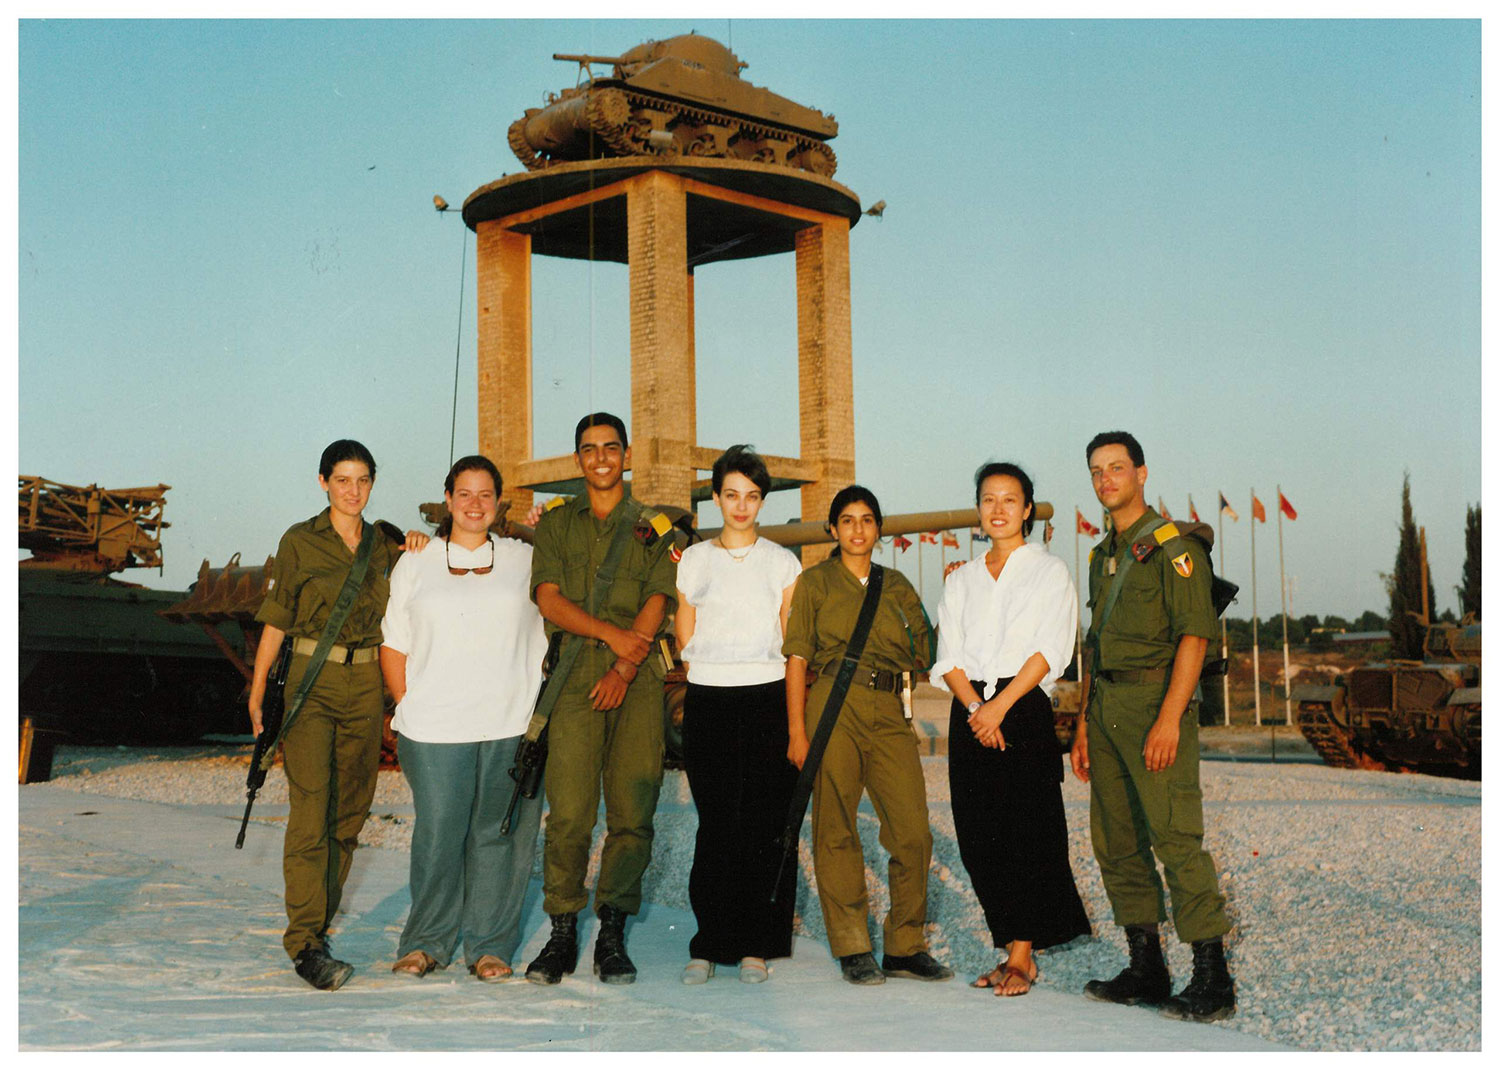 NWS Fellows with Latrun Soldiers